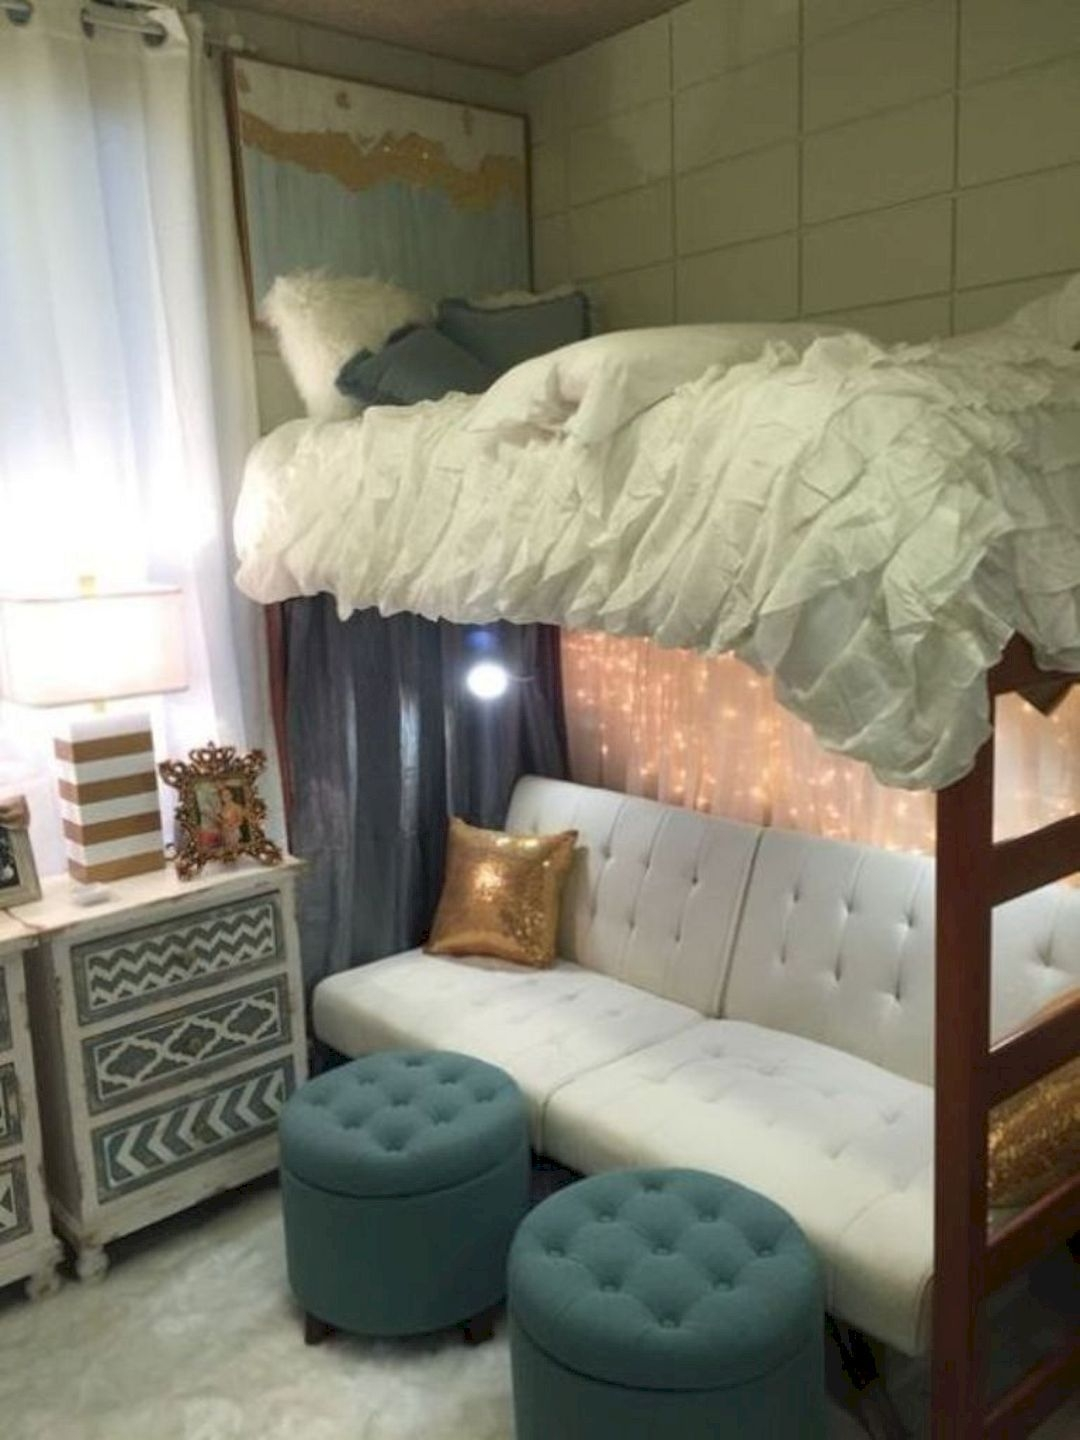 Exquisite Dorm Decorating Ideas for Girls On Beauteous 5 Magnificent Living Room Walls Decorating Ideas On Dorm Decorating Ideas for Girls